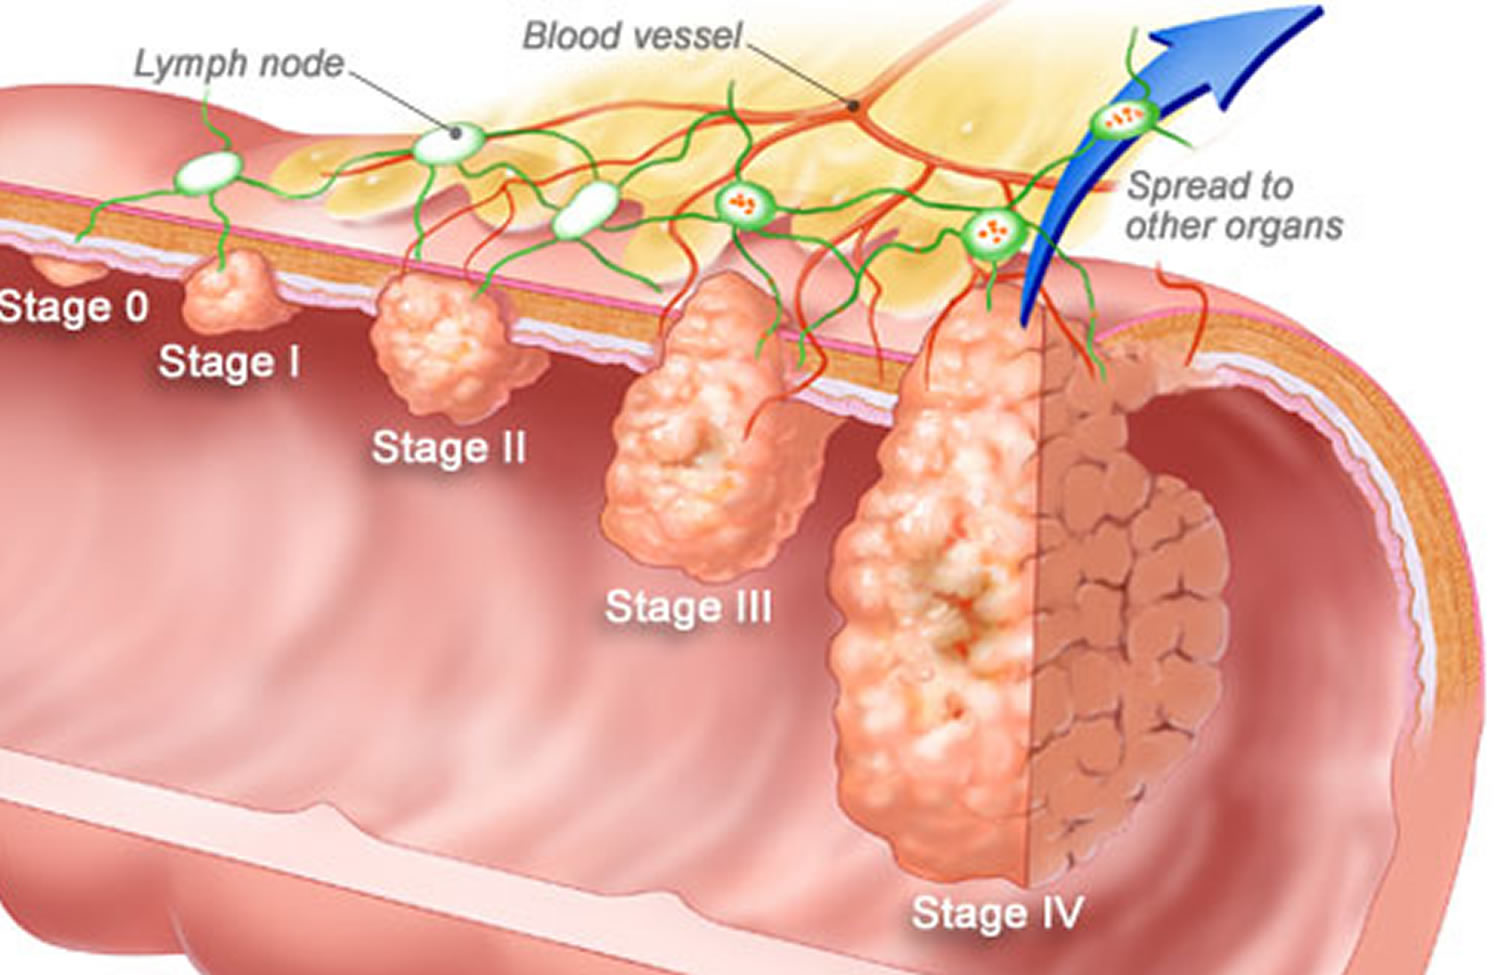 pathophysiology of colon cancer diagram 2001 dodge caravan starter wiring rectal bleeding and from the rectum causes